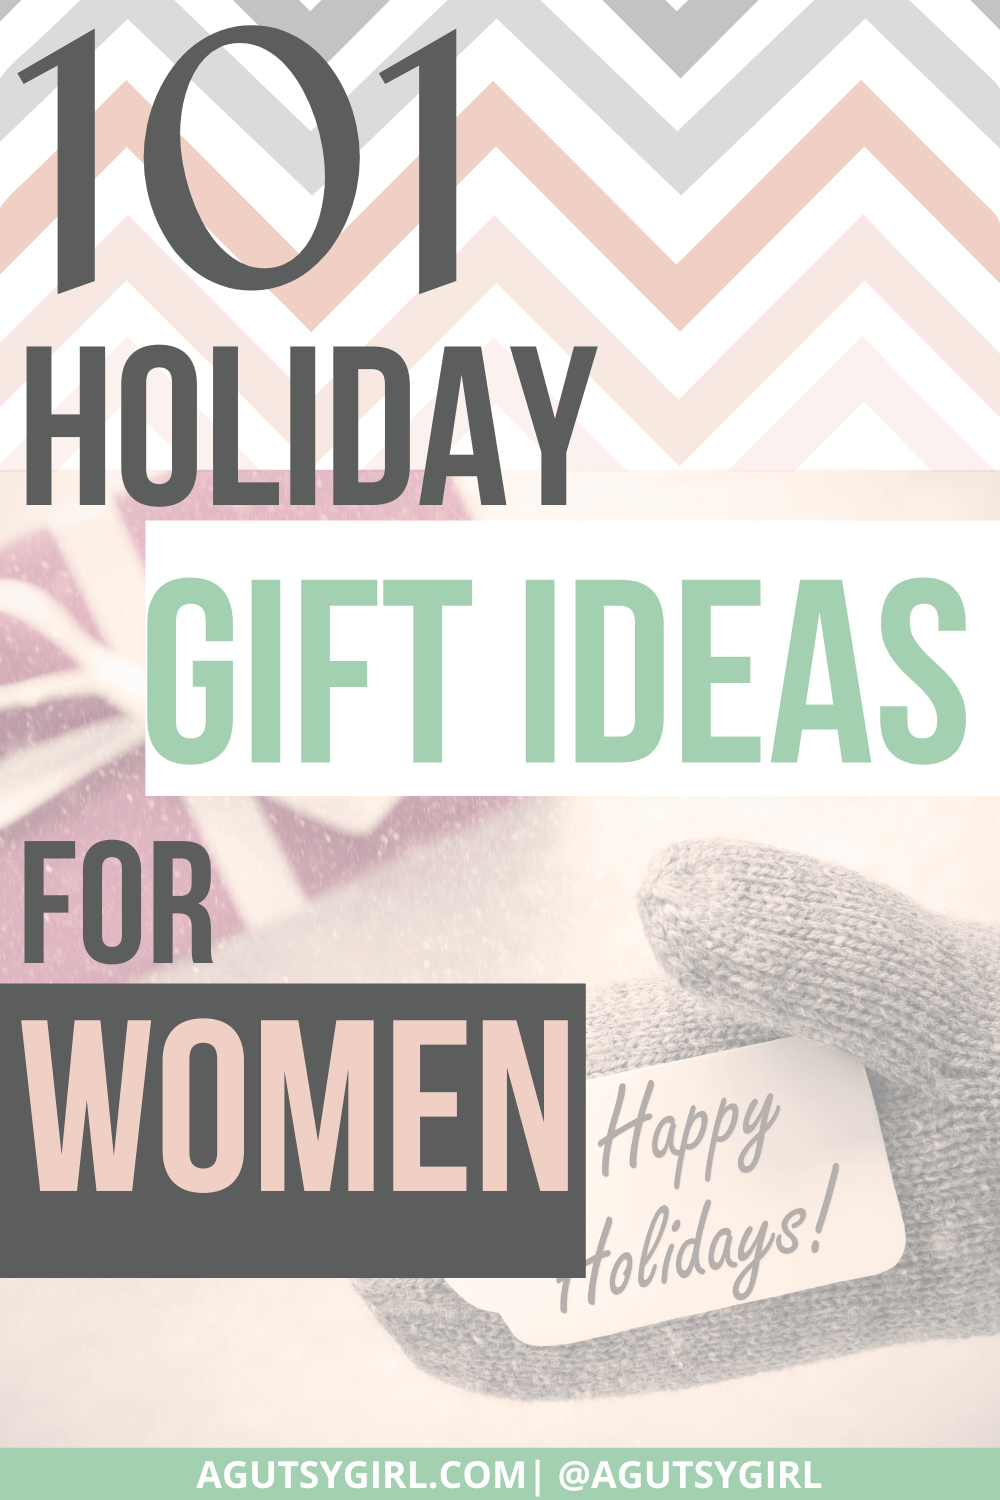 101 Holiday Gifts for Women agutsygirl.com #holidaygiftsforher #holidaygifts #giftsforwomen